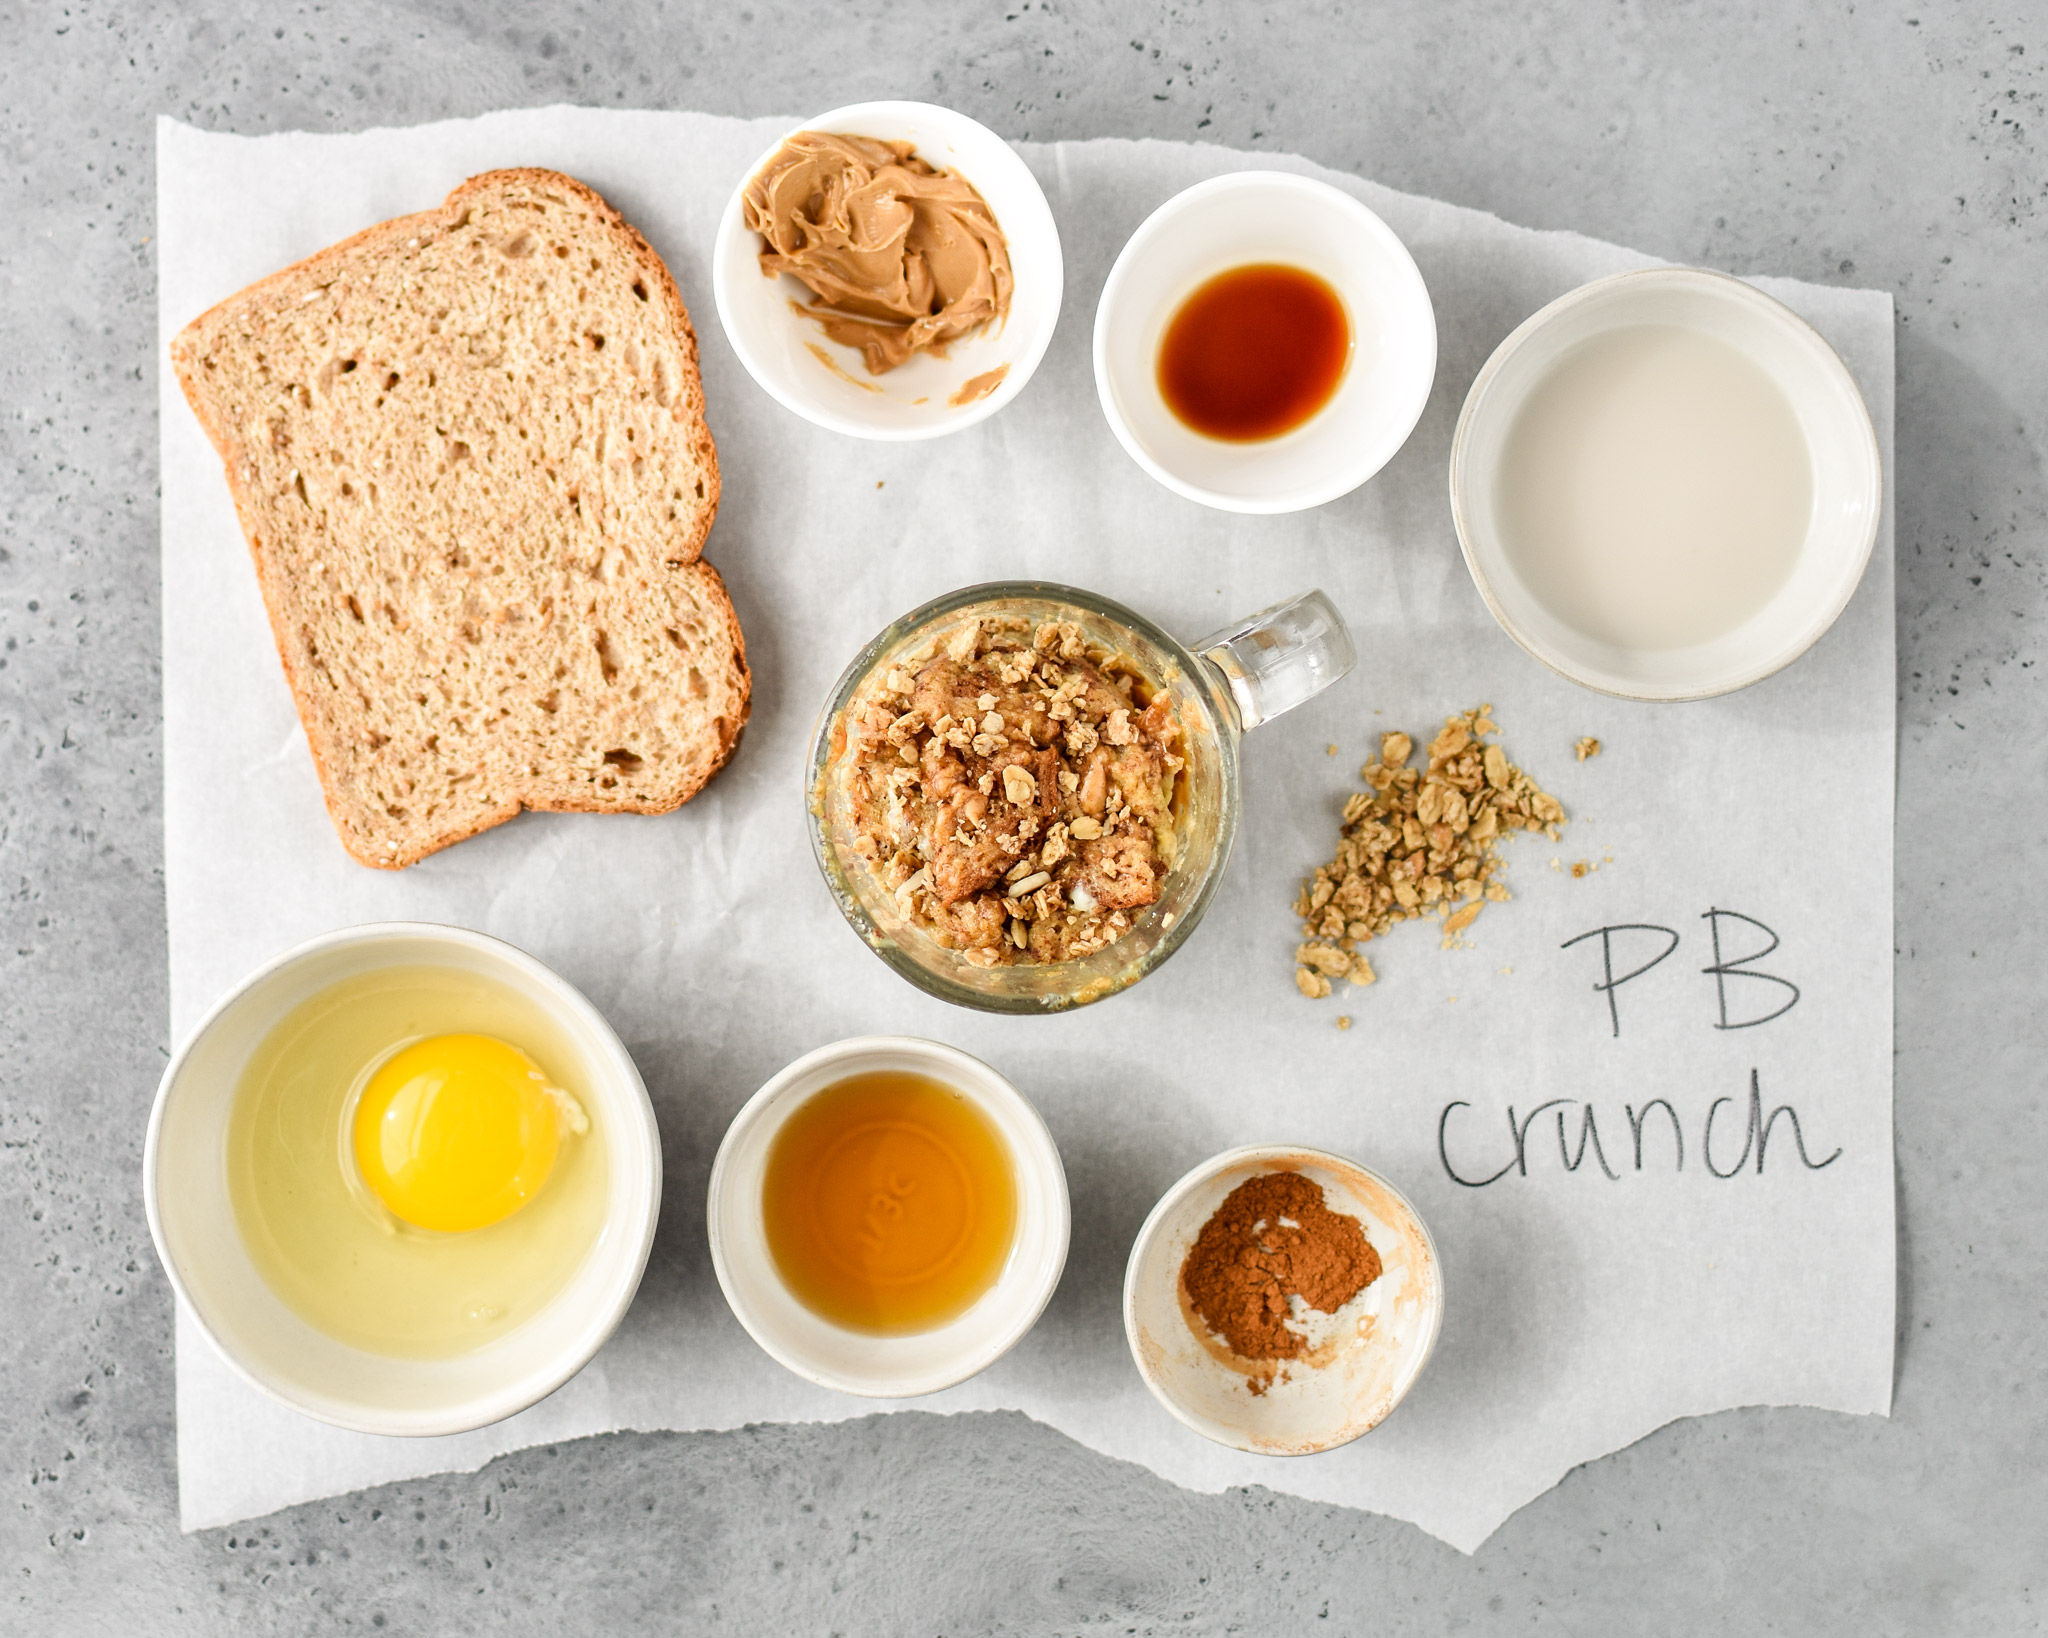 ingredients for PB crunch microwave mug french toast